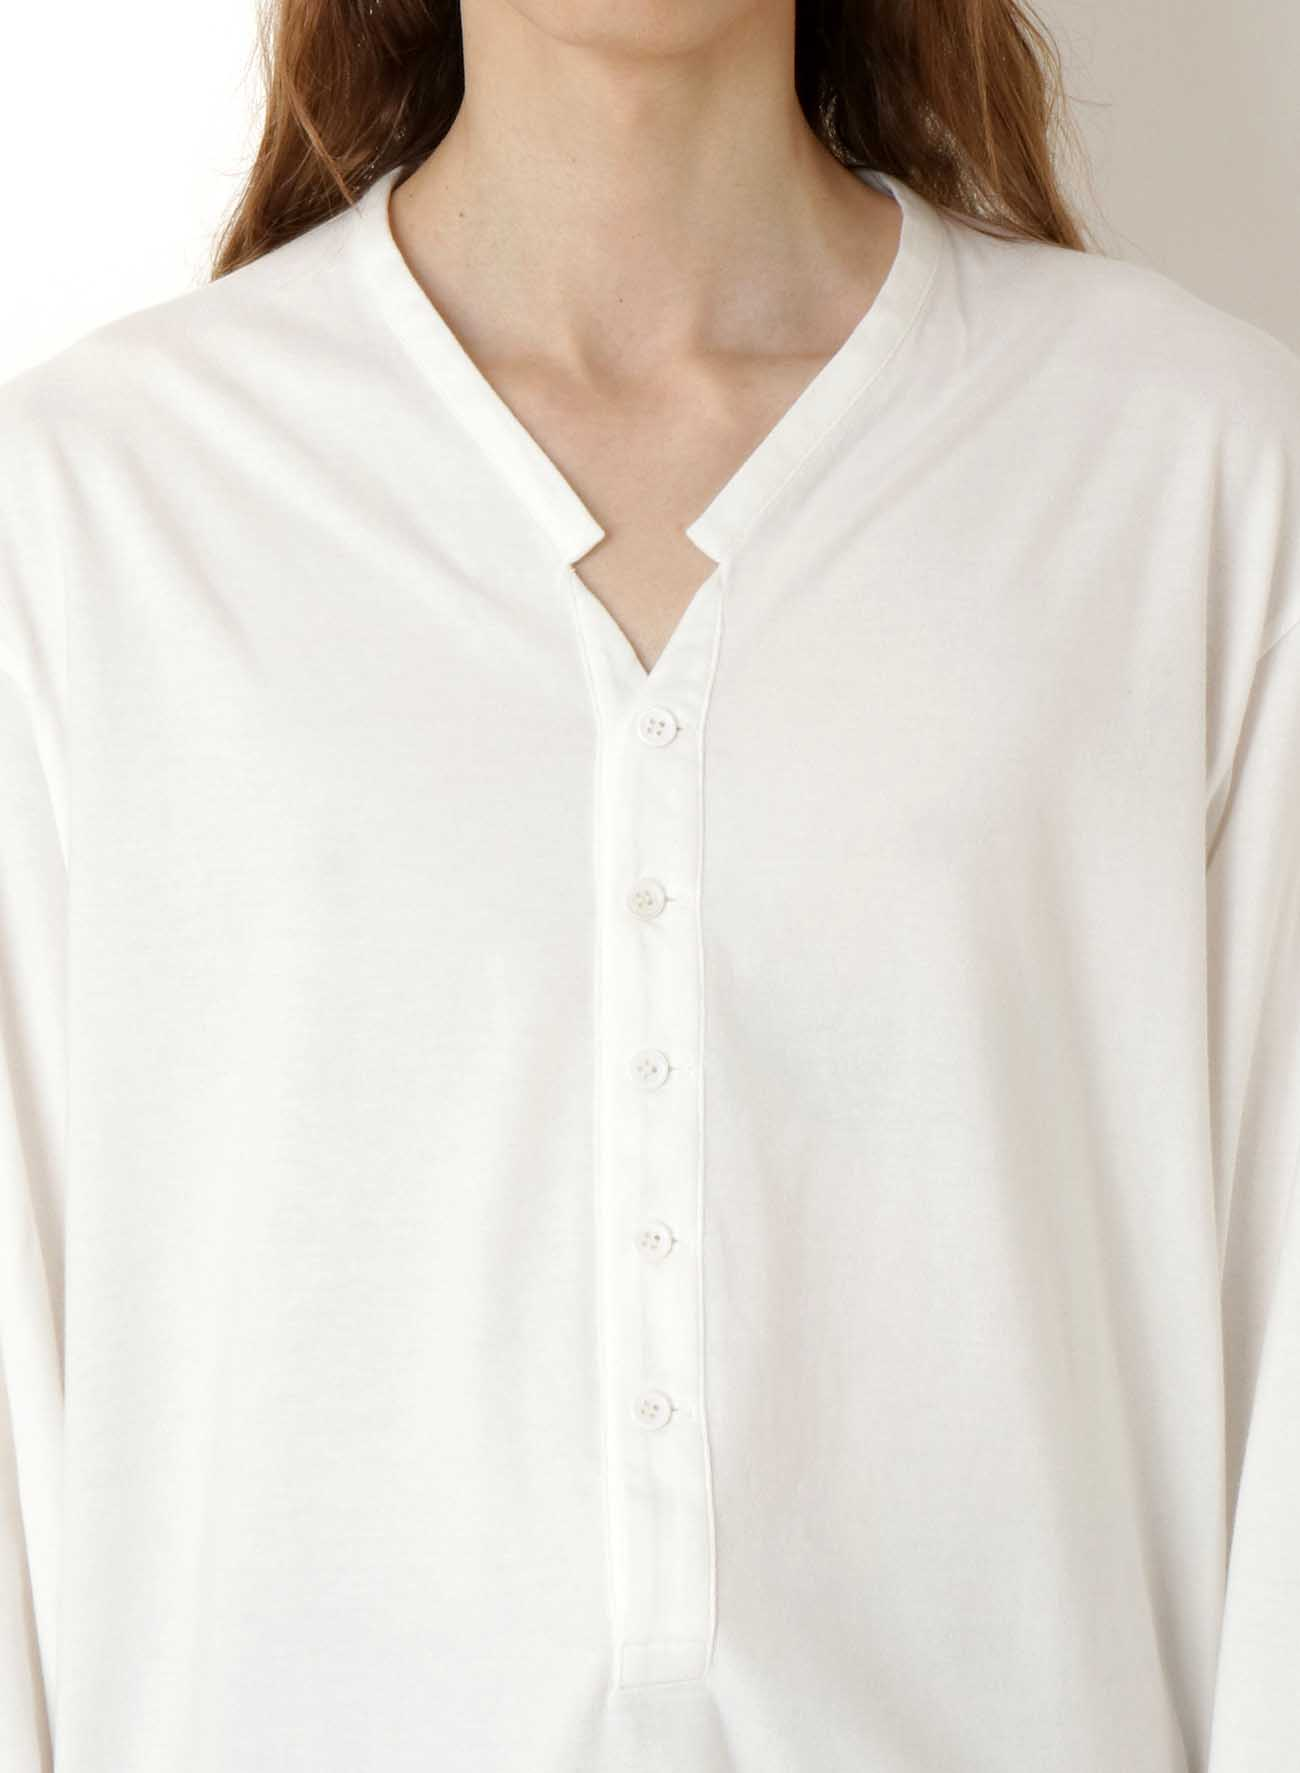 40/2 COMBED PLAIN STITCH SMALL COLLAR HENLEY